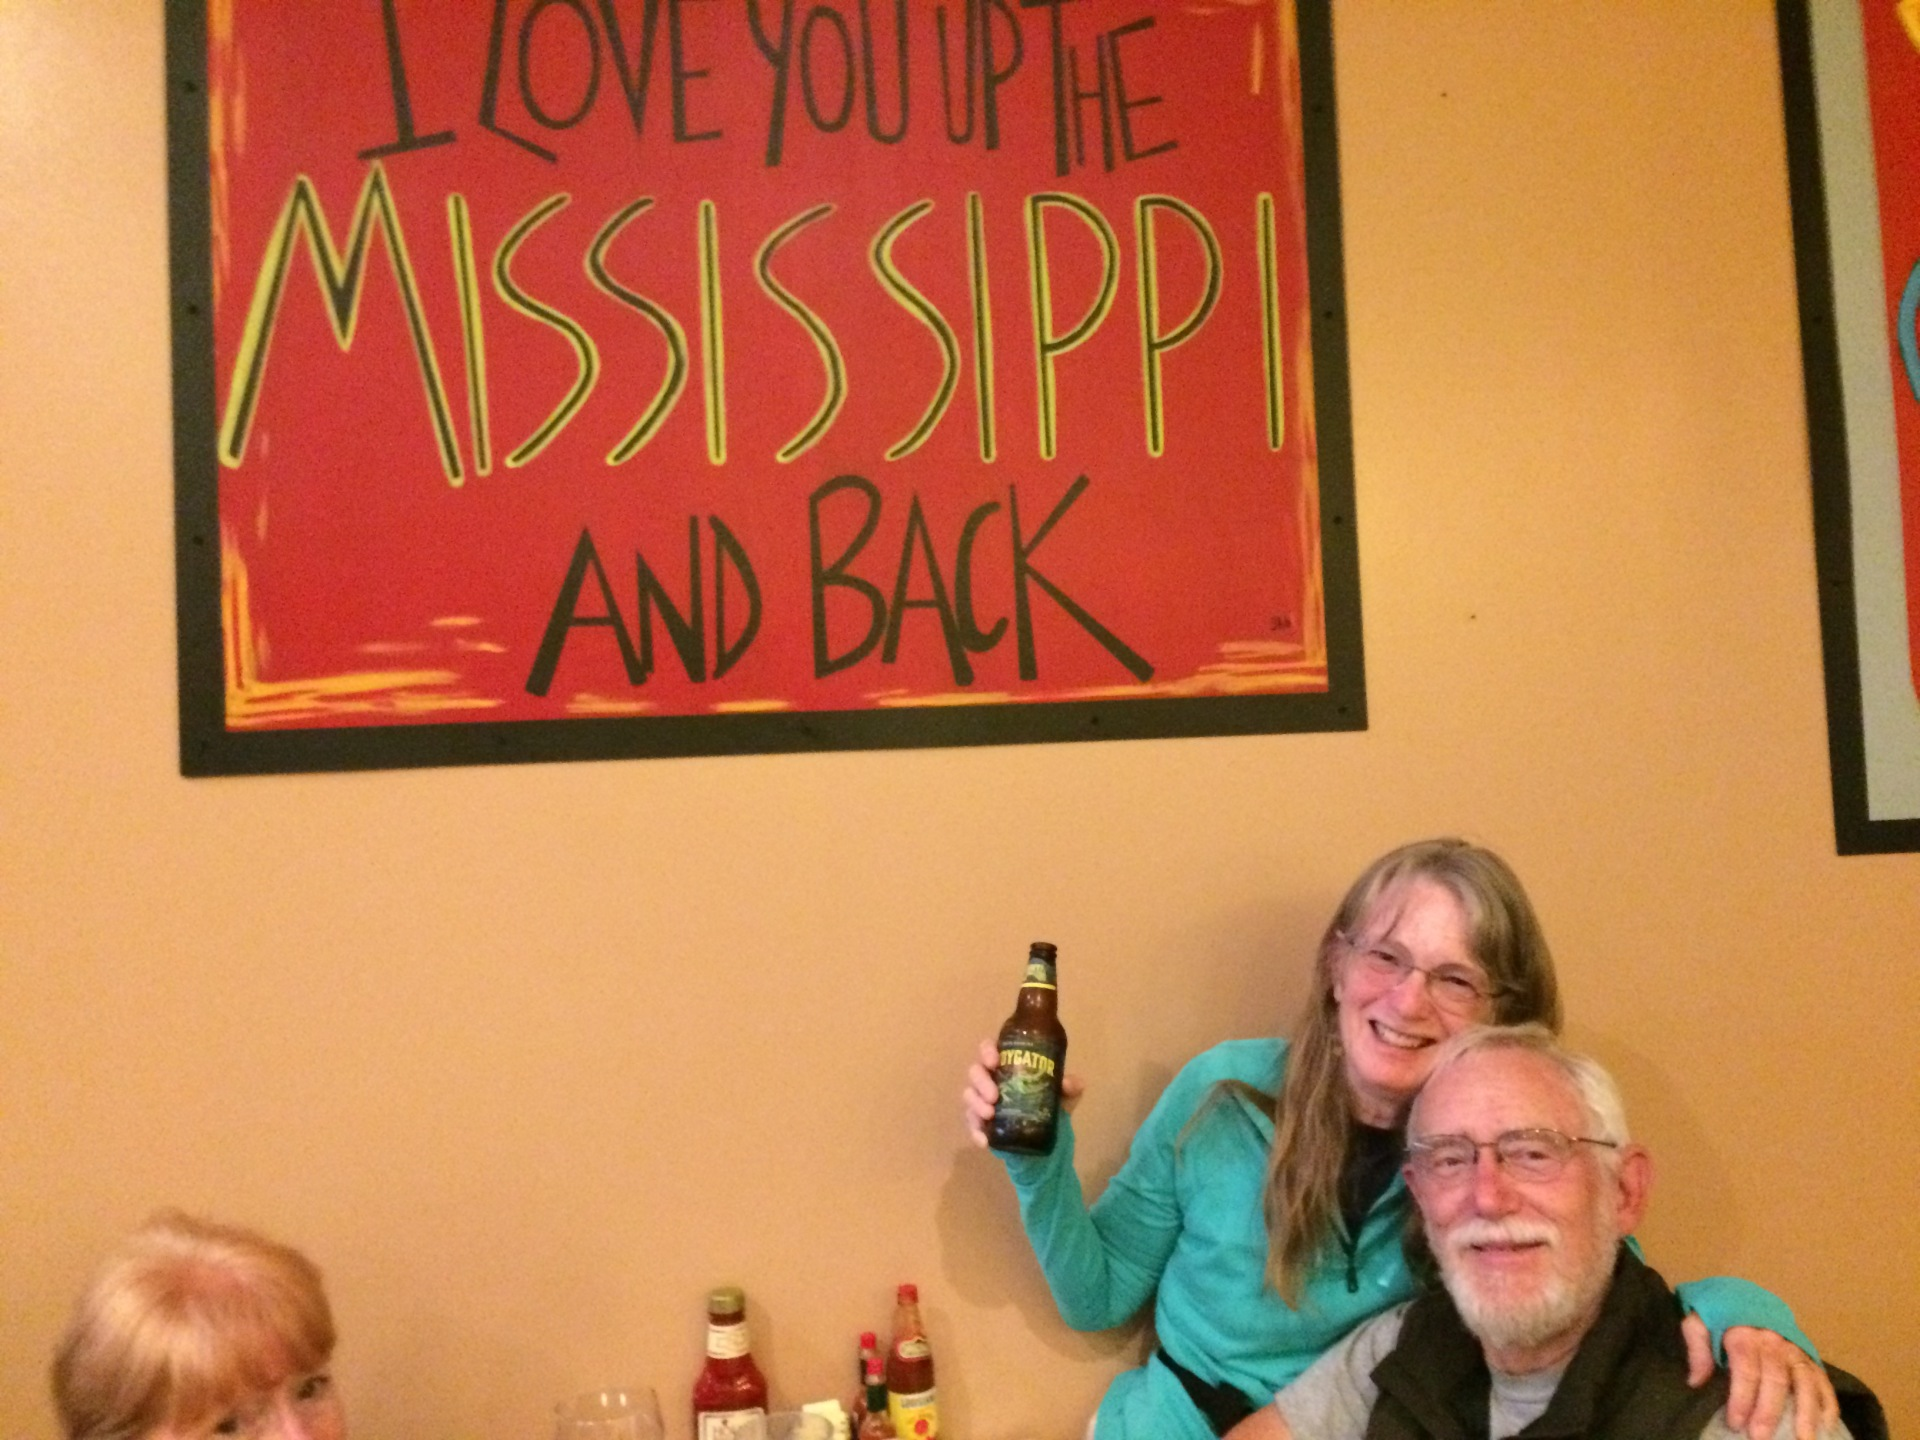 Vicksburg Part I: I Love You Up the Mississippi and Back